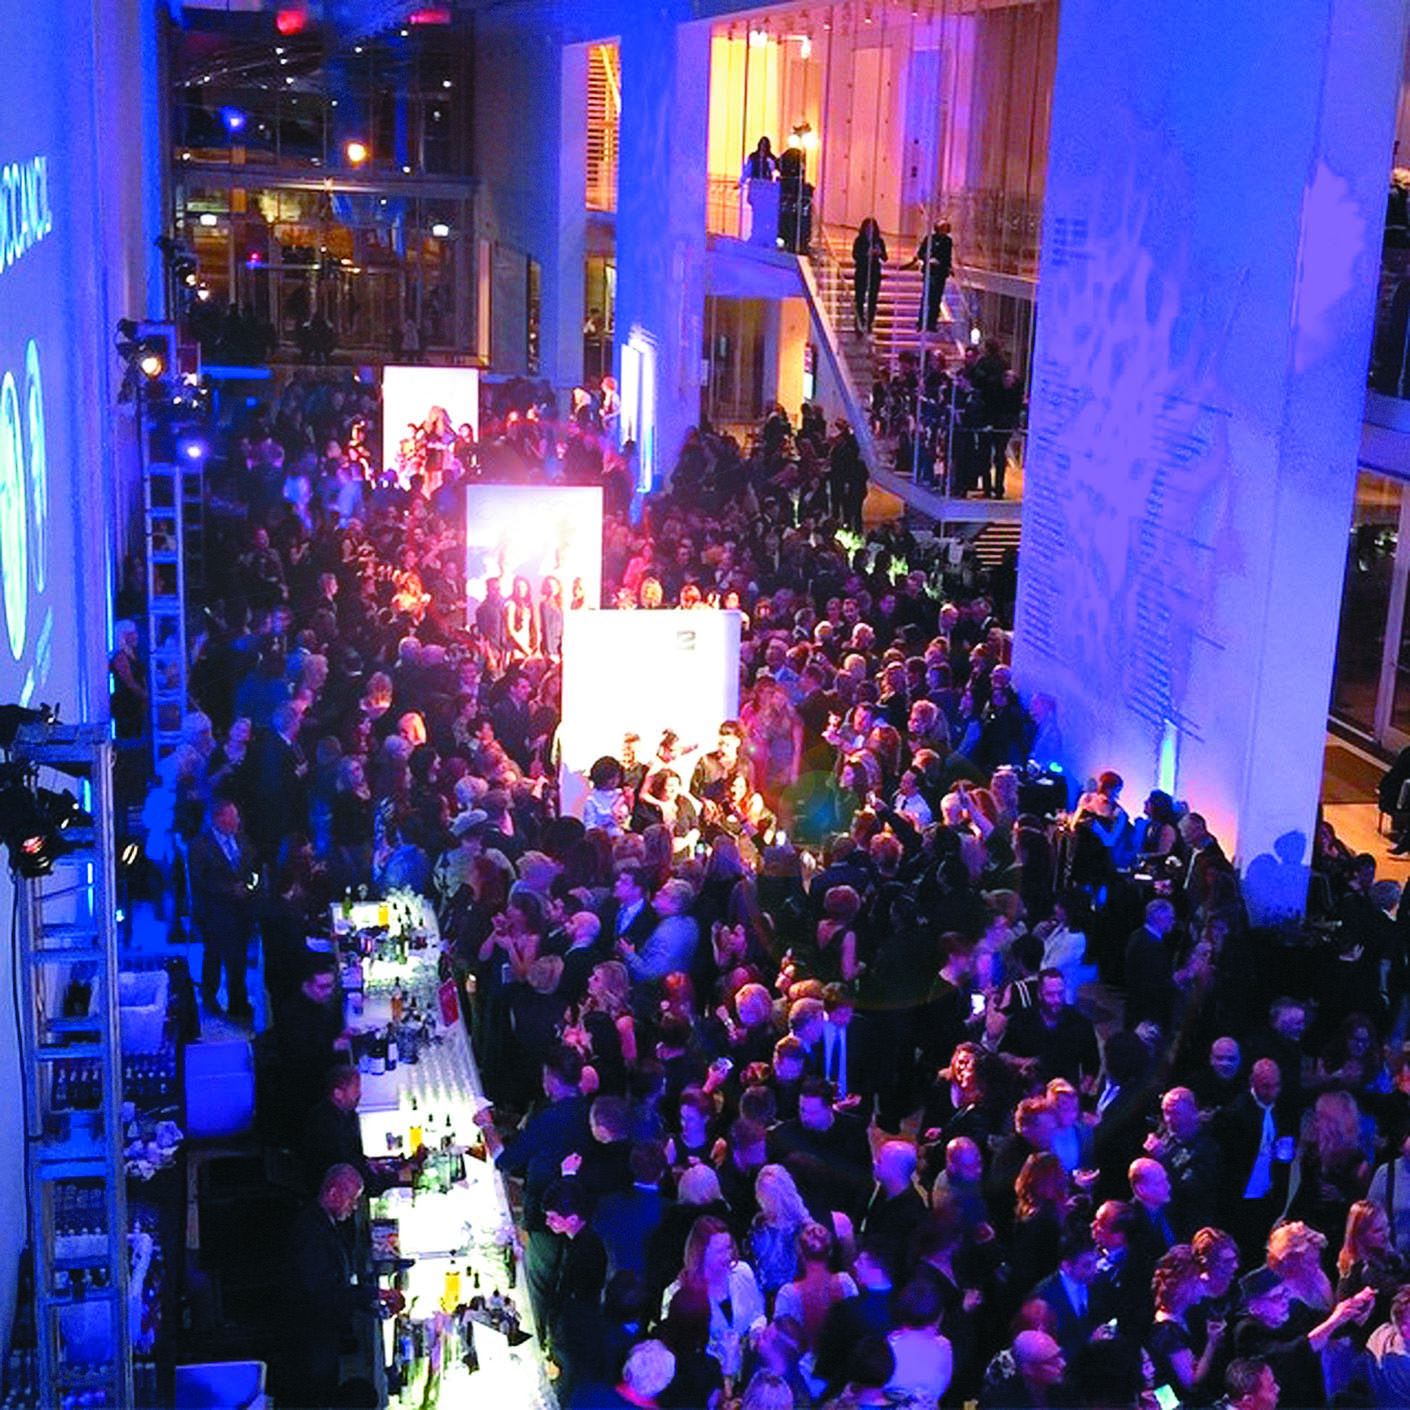 The Art Institute of Chicago was packed with party revelers